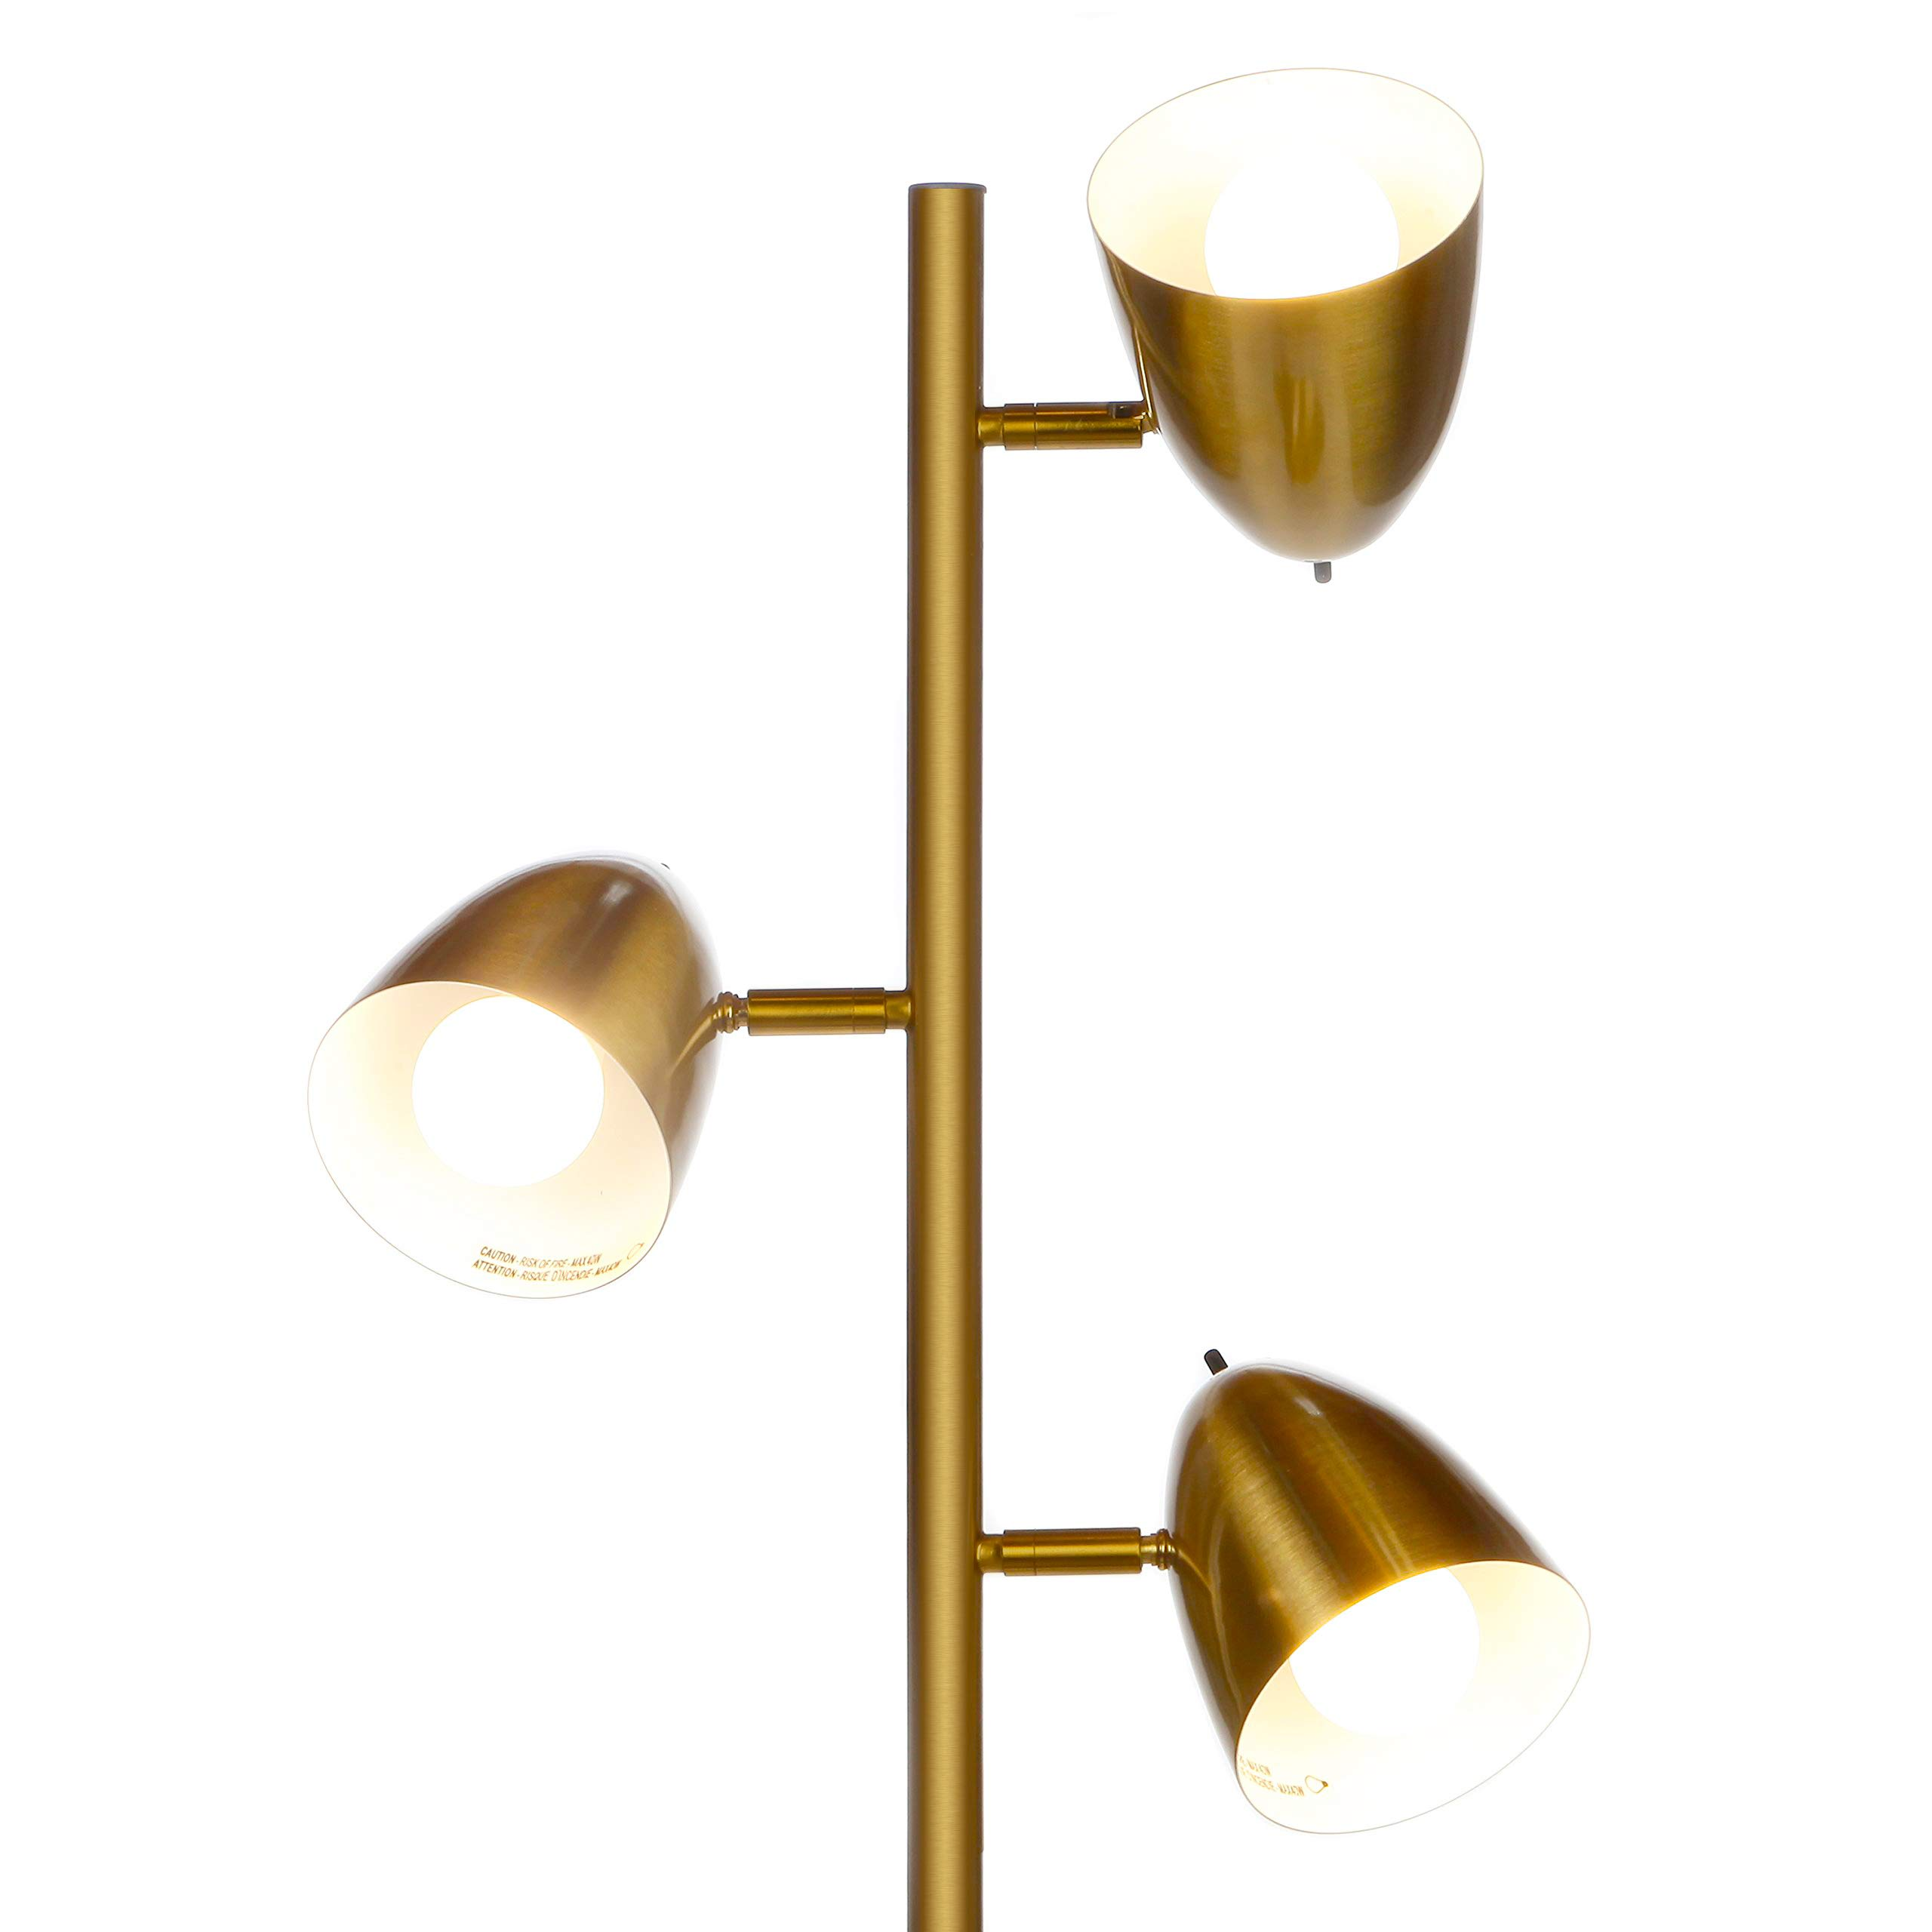 Brightech Jacob - LED Reading and Floor Lamp for Living Rooms & Bedrooms - Classy, Mid Century Modern Adjustable 3 Light Tree - Standing Tall Pole Lamp with 3 LED Bulbs - Antique Brass/Gold by Brightech (Image #2)